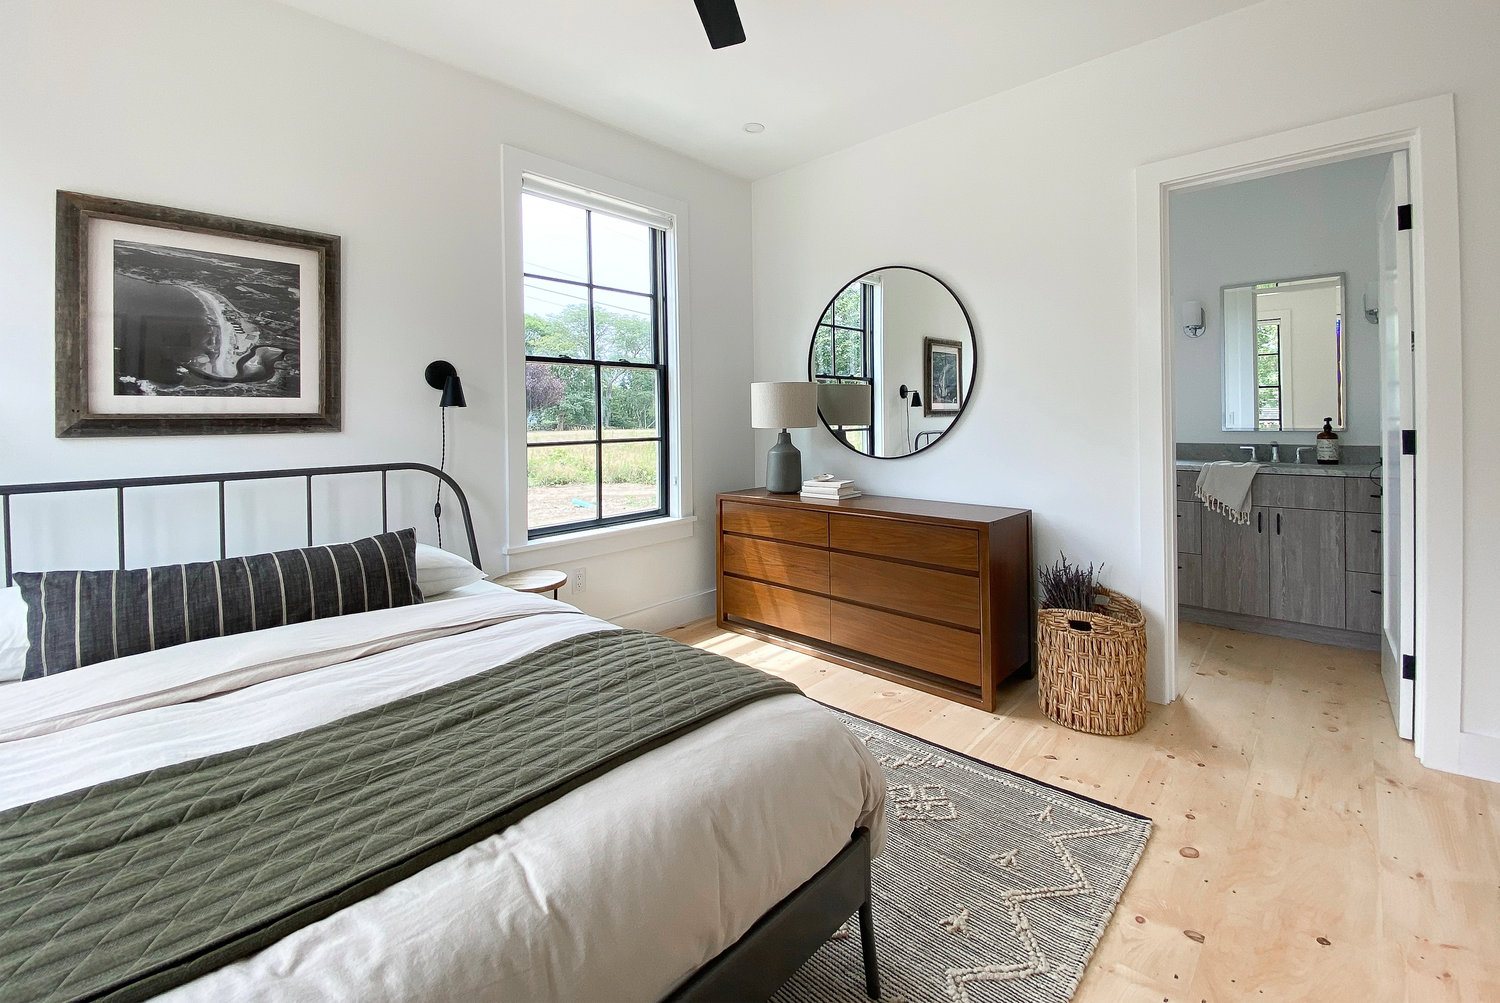 Modern design meets vintage farmhouse in the master bedroom